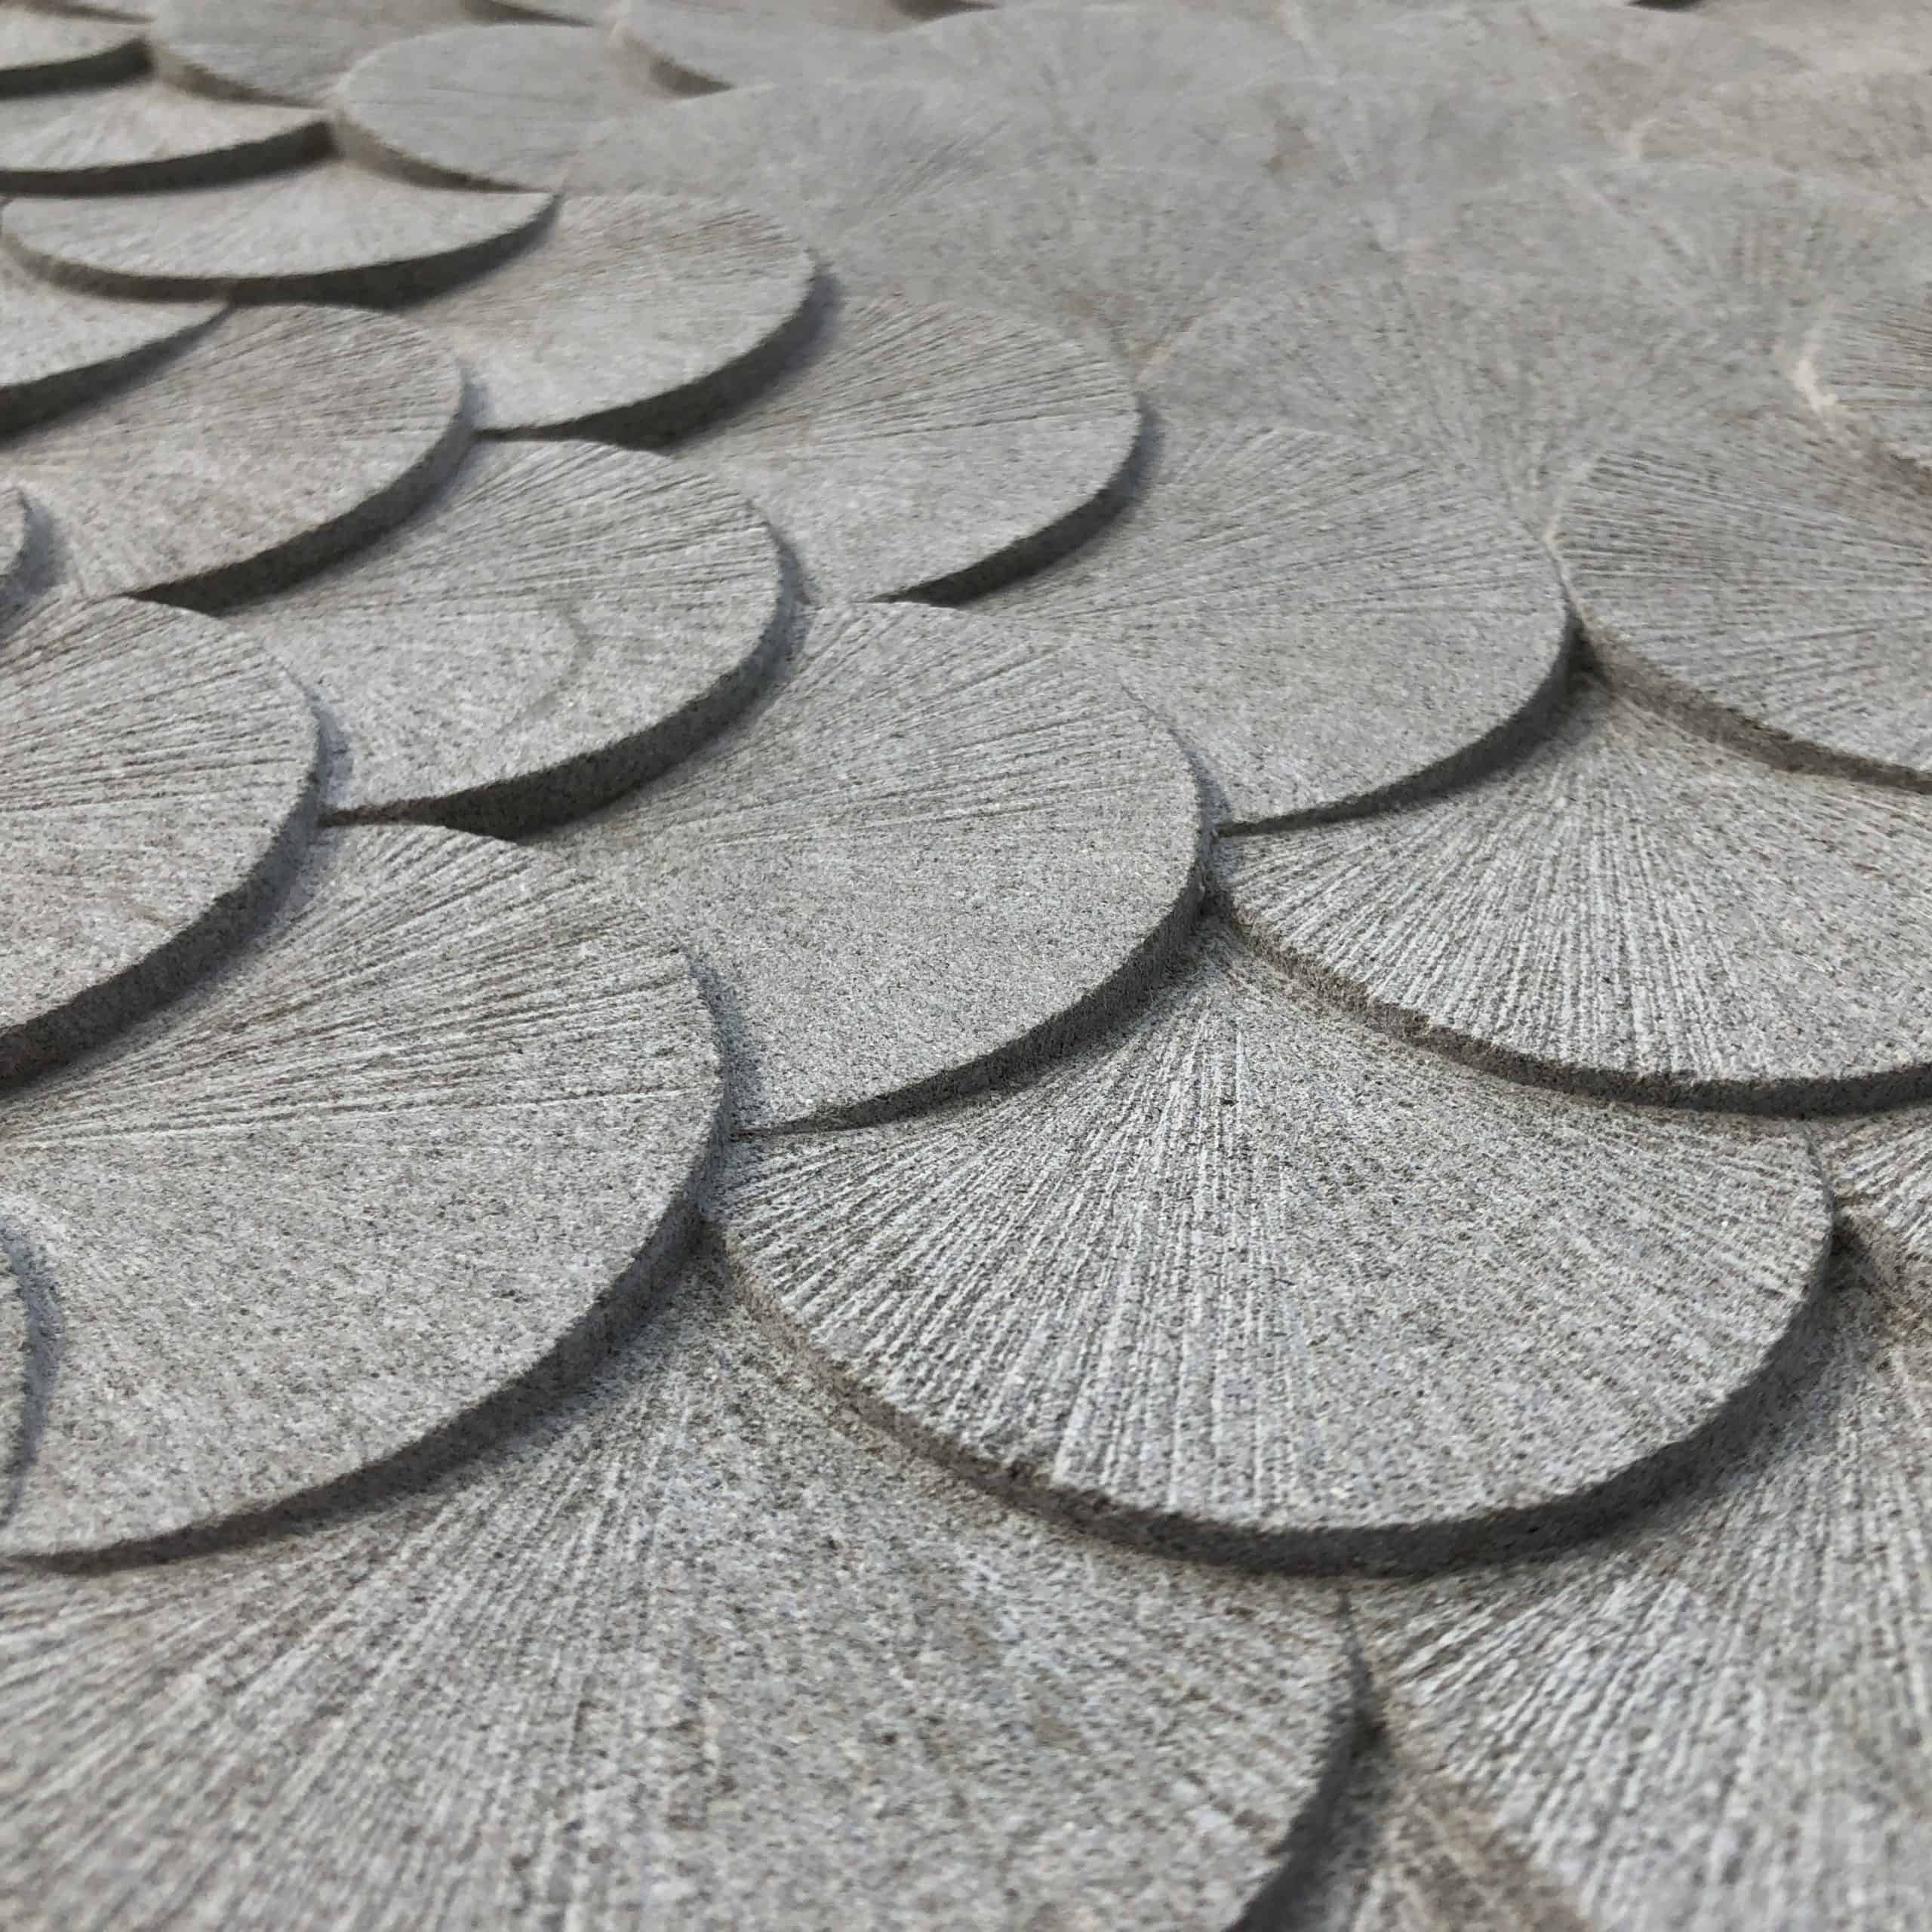 detail of stone carving, circular discs overlapping one another